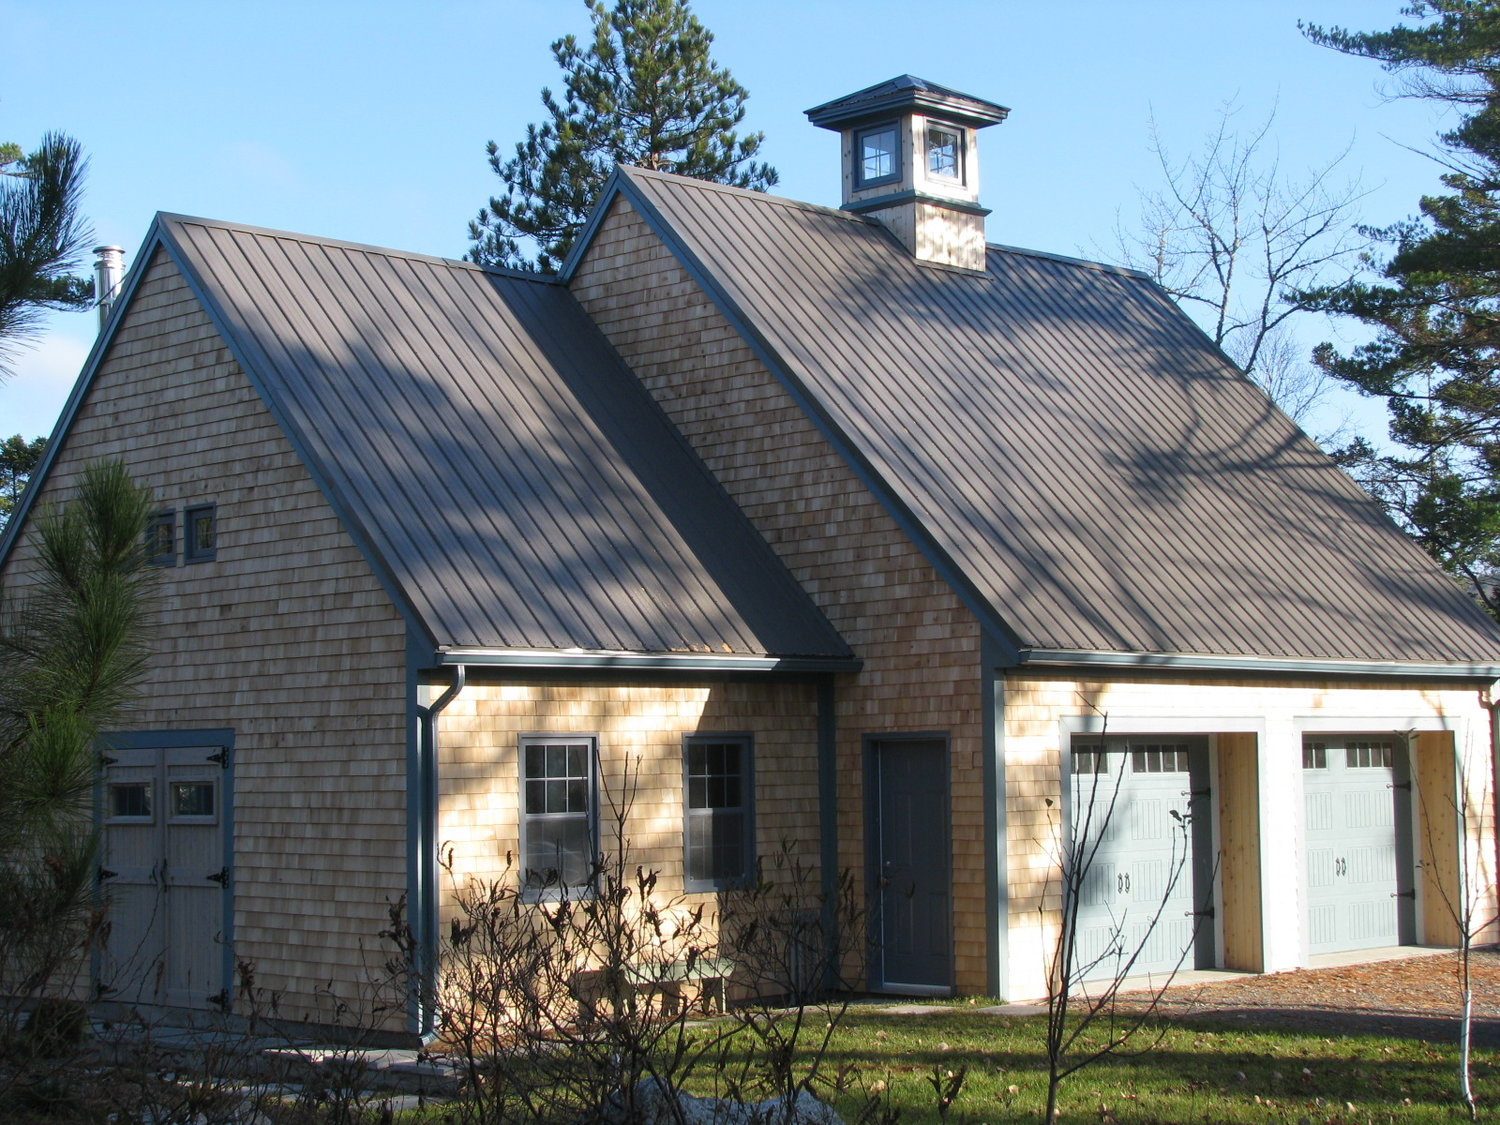 Scotia Metal Products – Manufacturing steel roofing products in